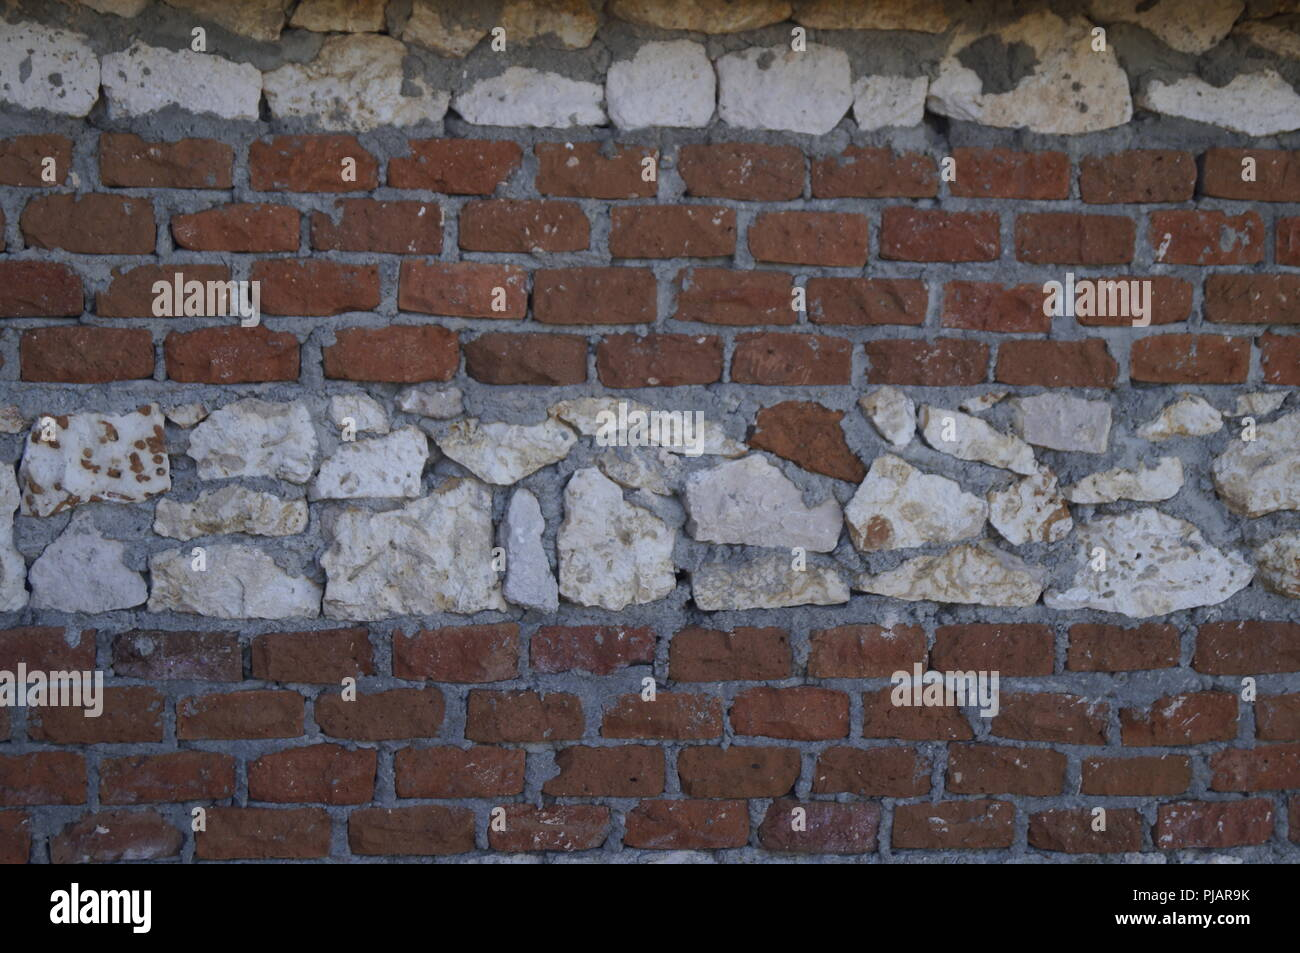 Stone and bricks wall background - Stock Image